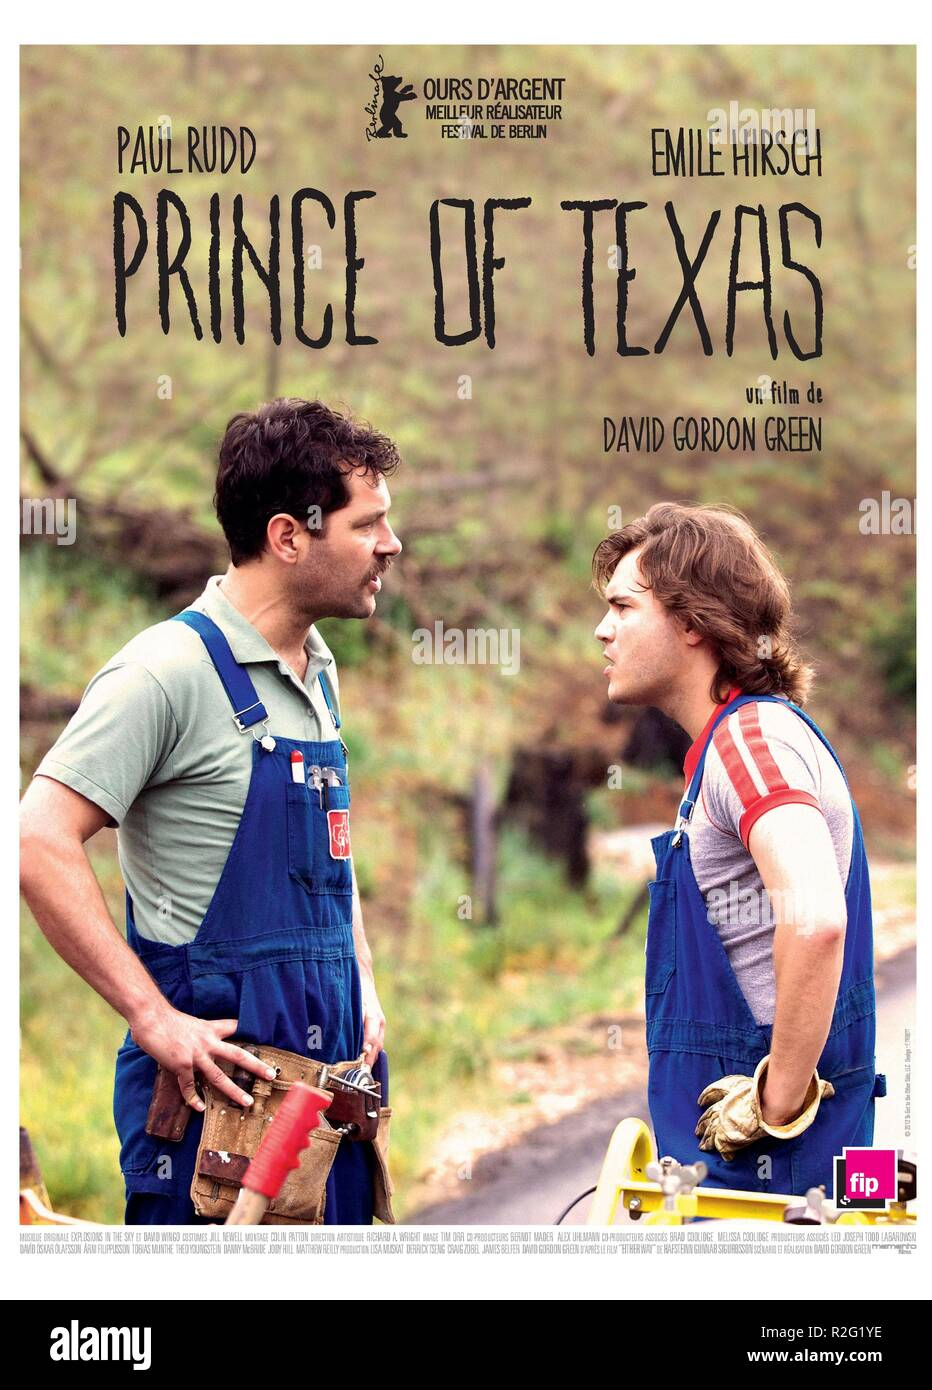 Prince Avalanche Year : 2013 USA Director : David Gordon Green Emile Hirsch, Paul Rudd Movie poster (Fr) - Stock Image